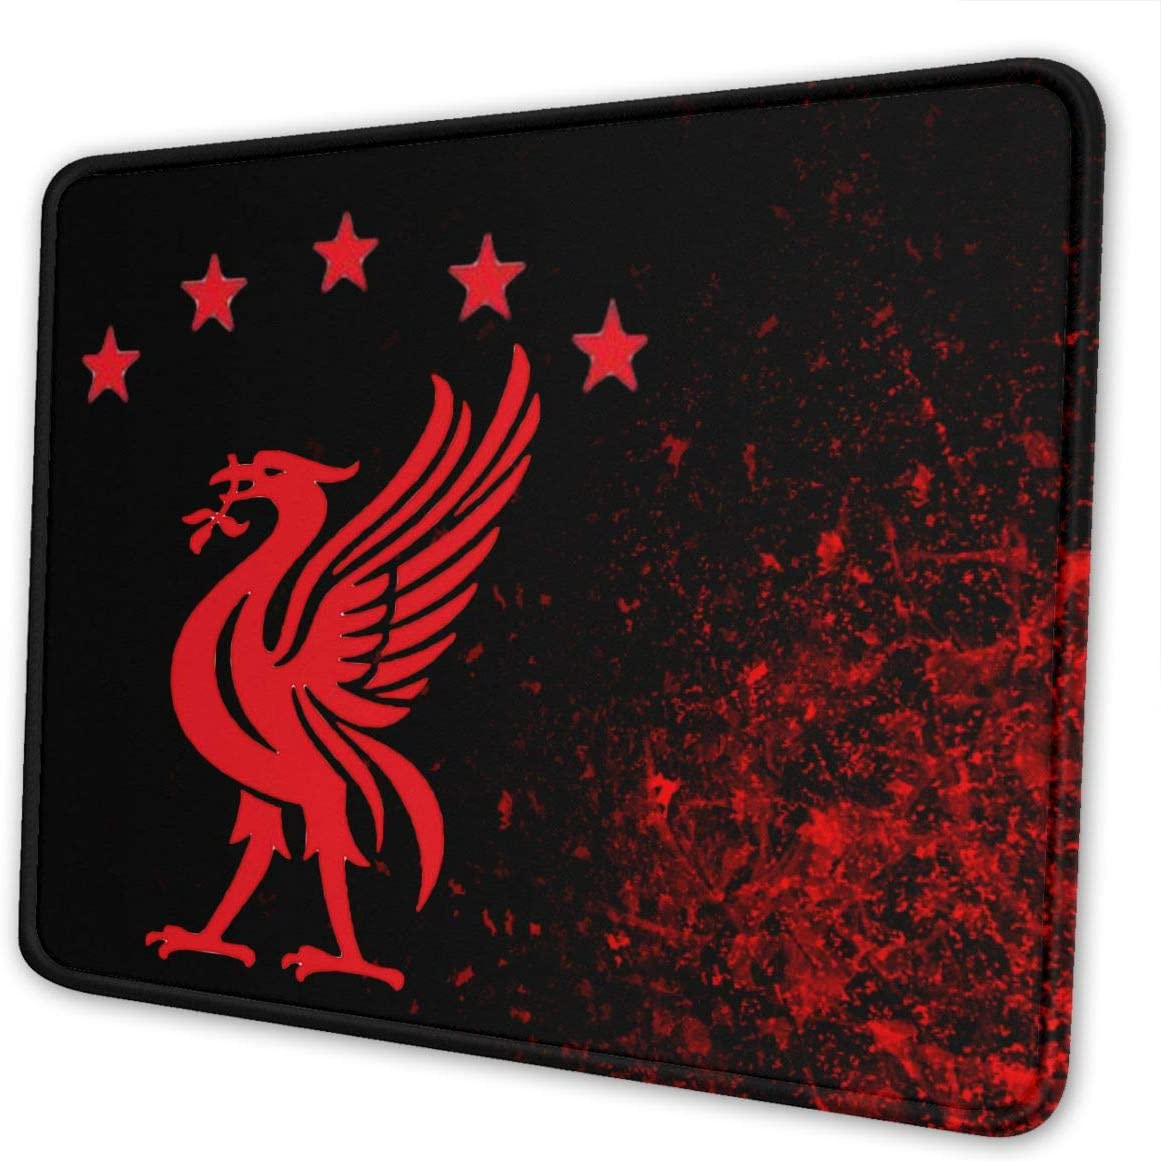 Liverpool F.C. Football Club Logo Mouse Pad for Laptops Office Computer Mouse Pad Personalized Design Non Slip Rubber Mouse Mat